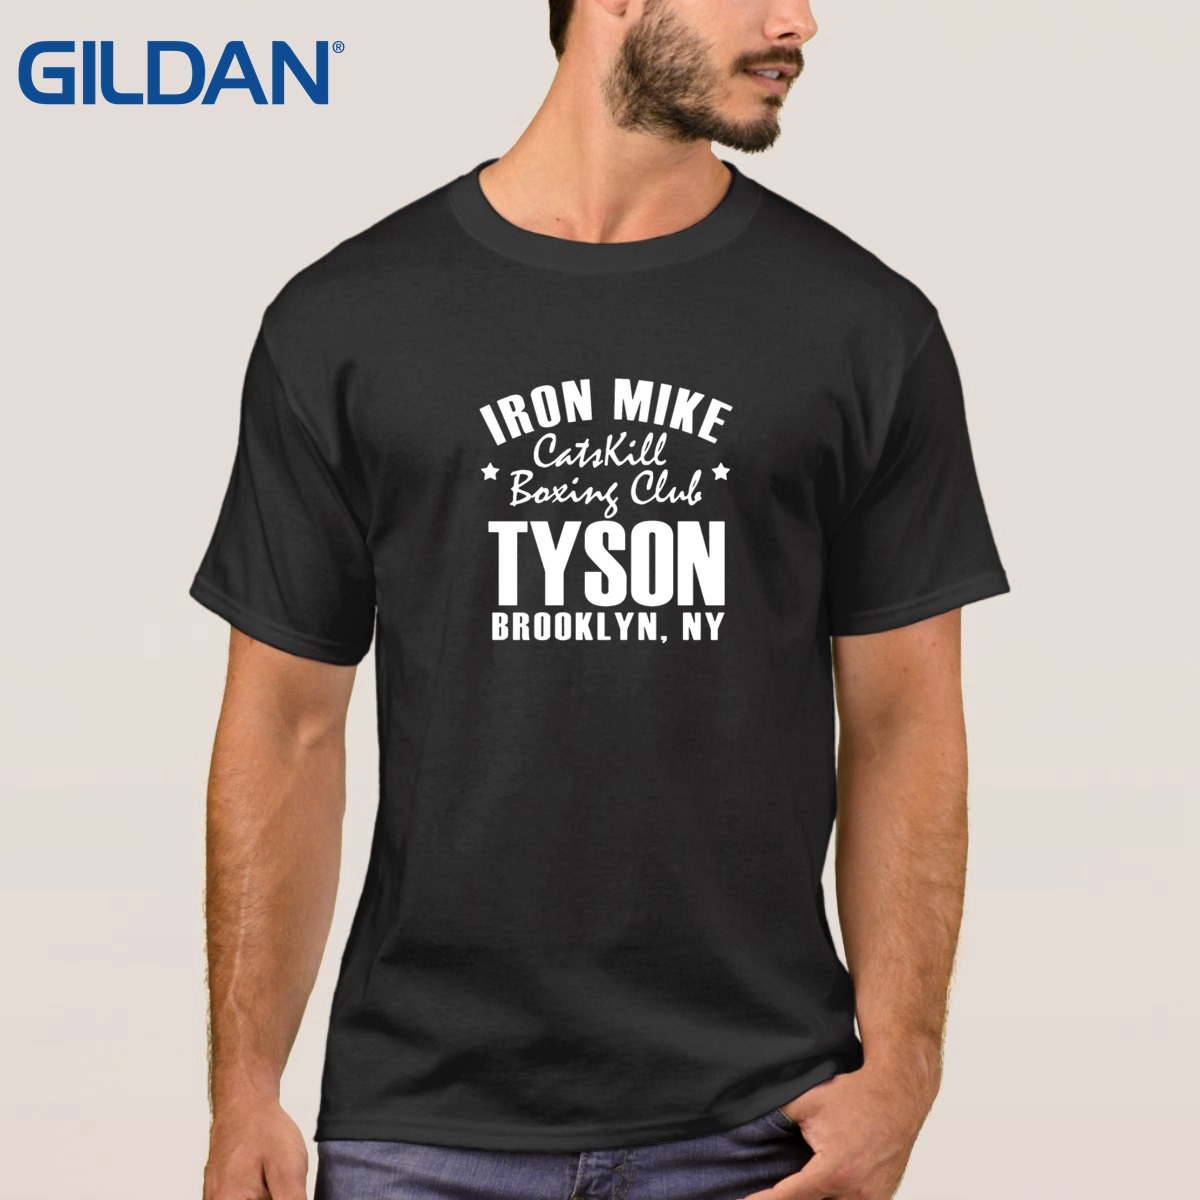 Iron Mike Camp 88 Tyson White Tee Shirts Super Summer Sale Size S To 4xl Brand-Clothing Men's T-Shirts Cotton